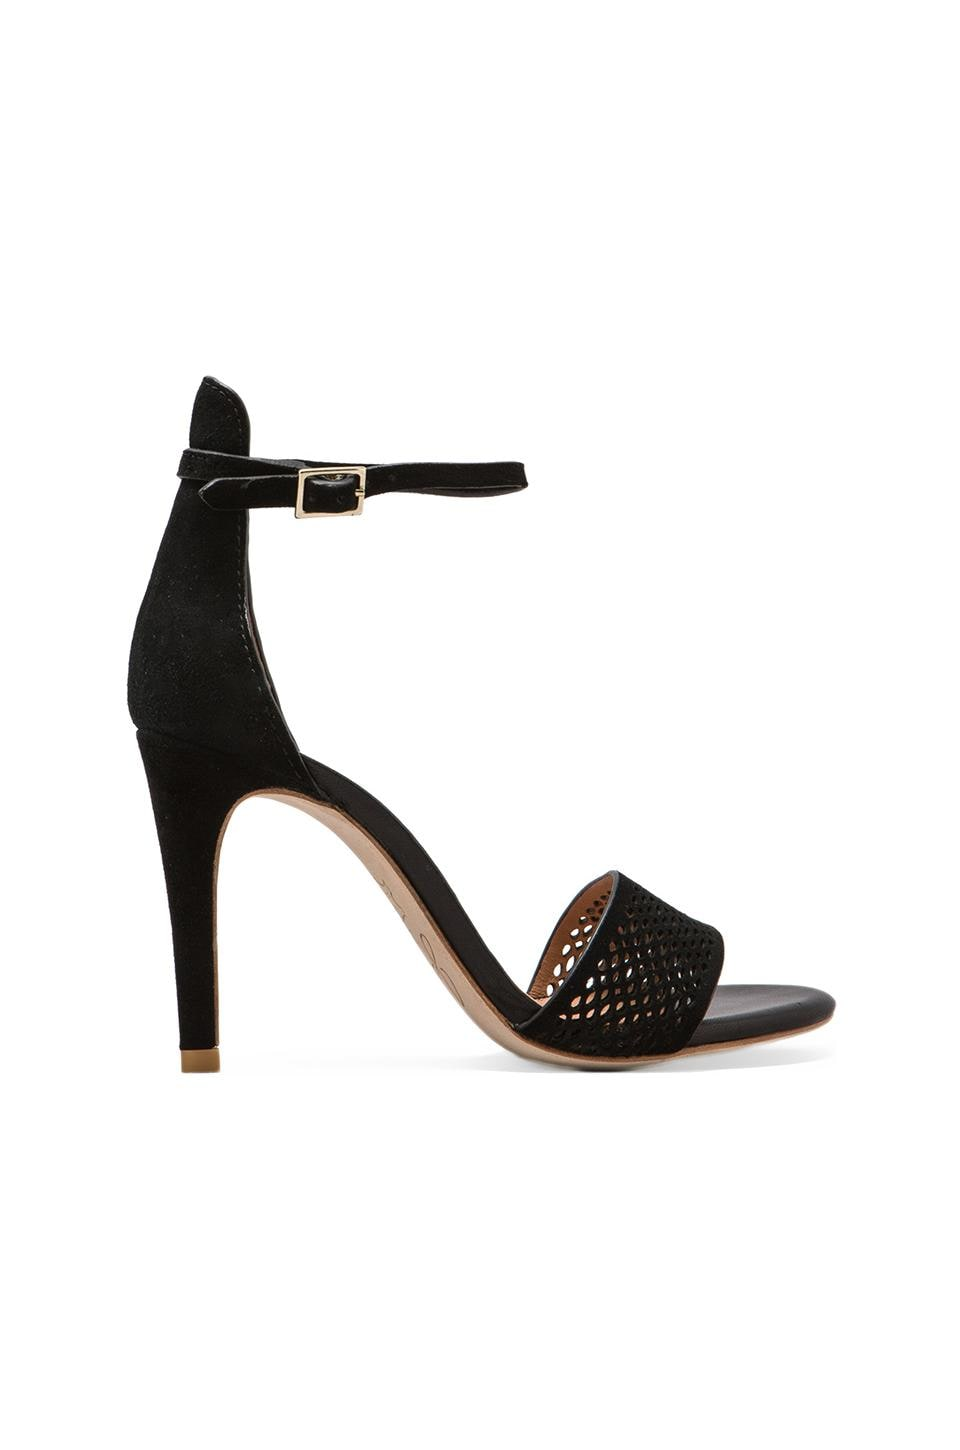 Joie Jaclyn Pump in Black